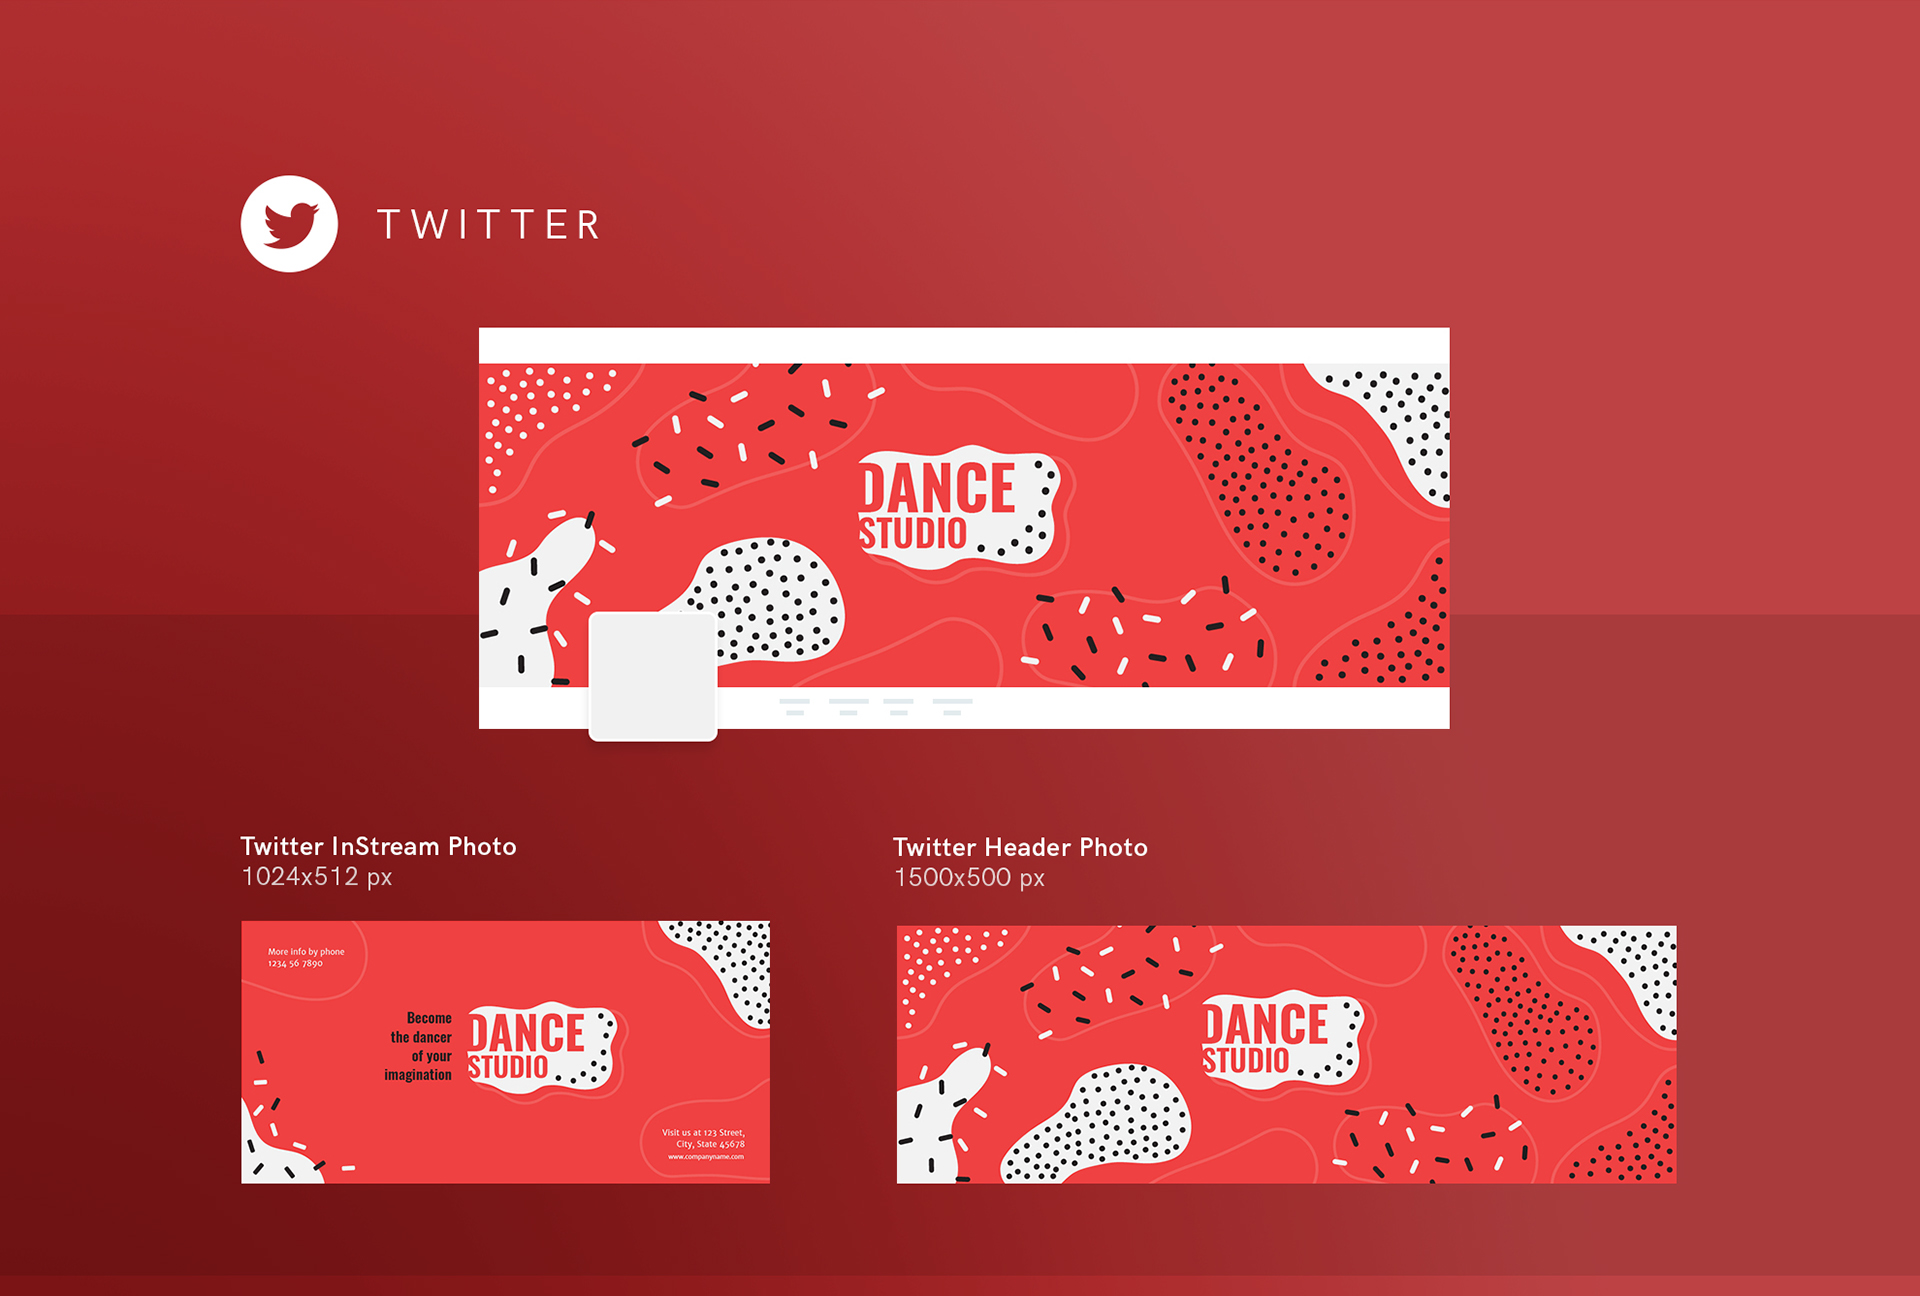 Dance Studio | Modern and Creative Templates Suite on Behance